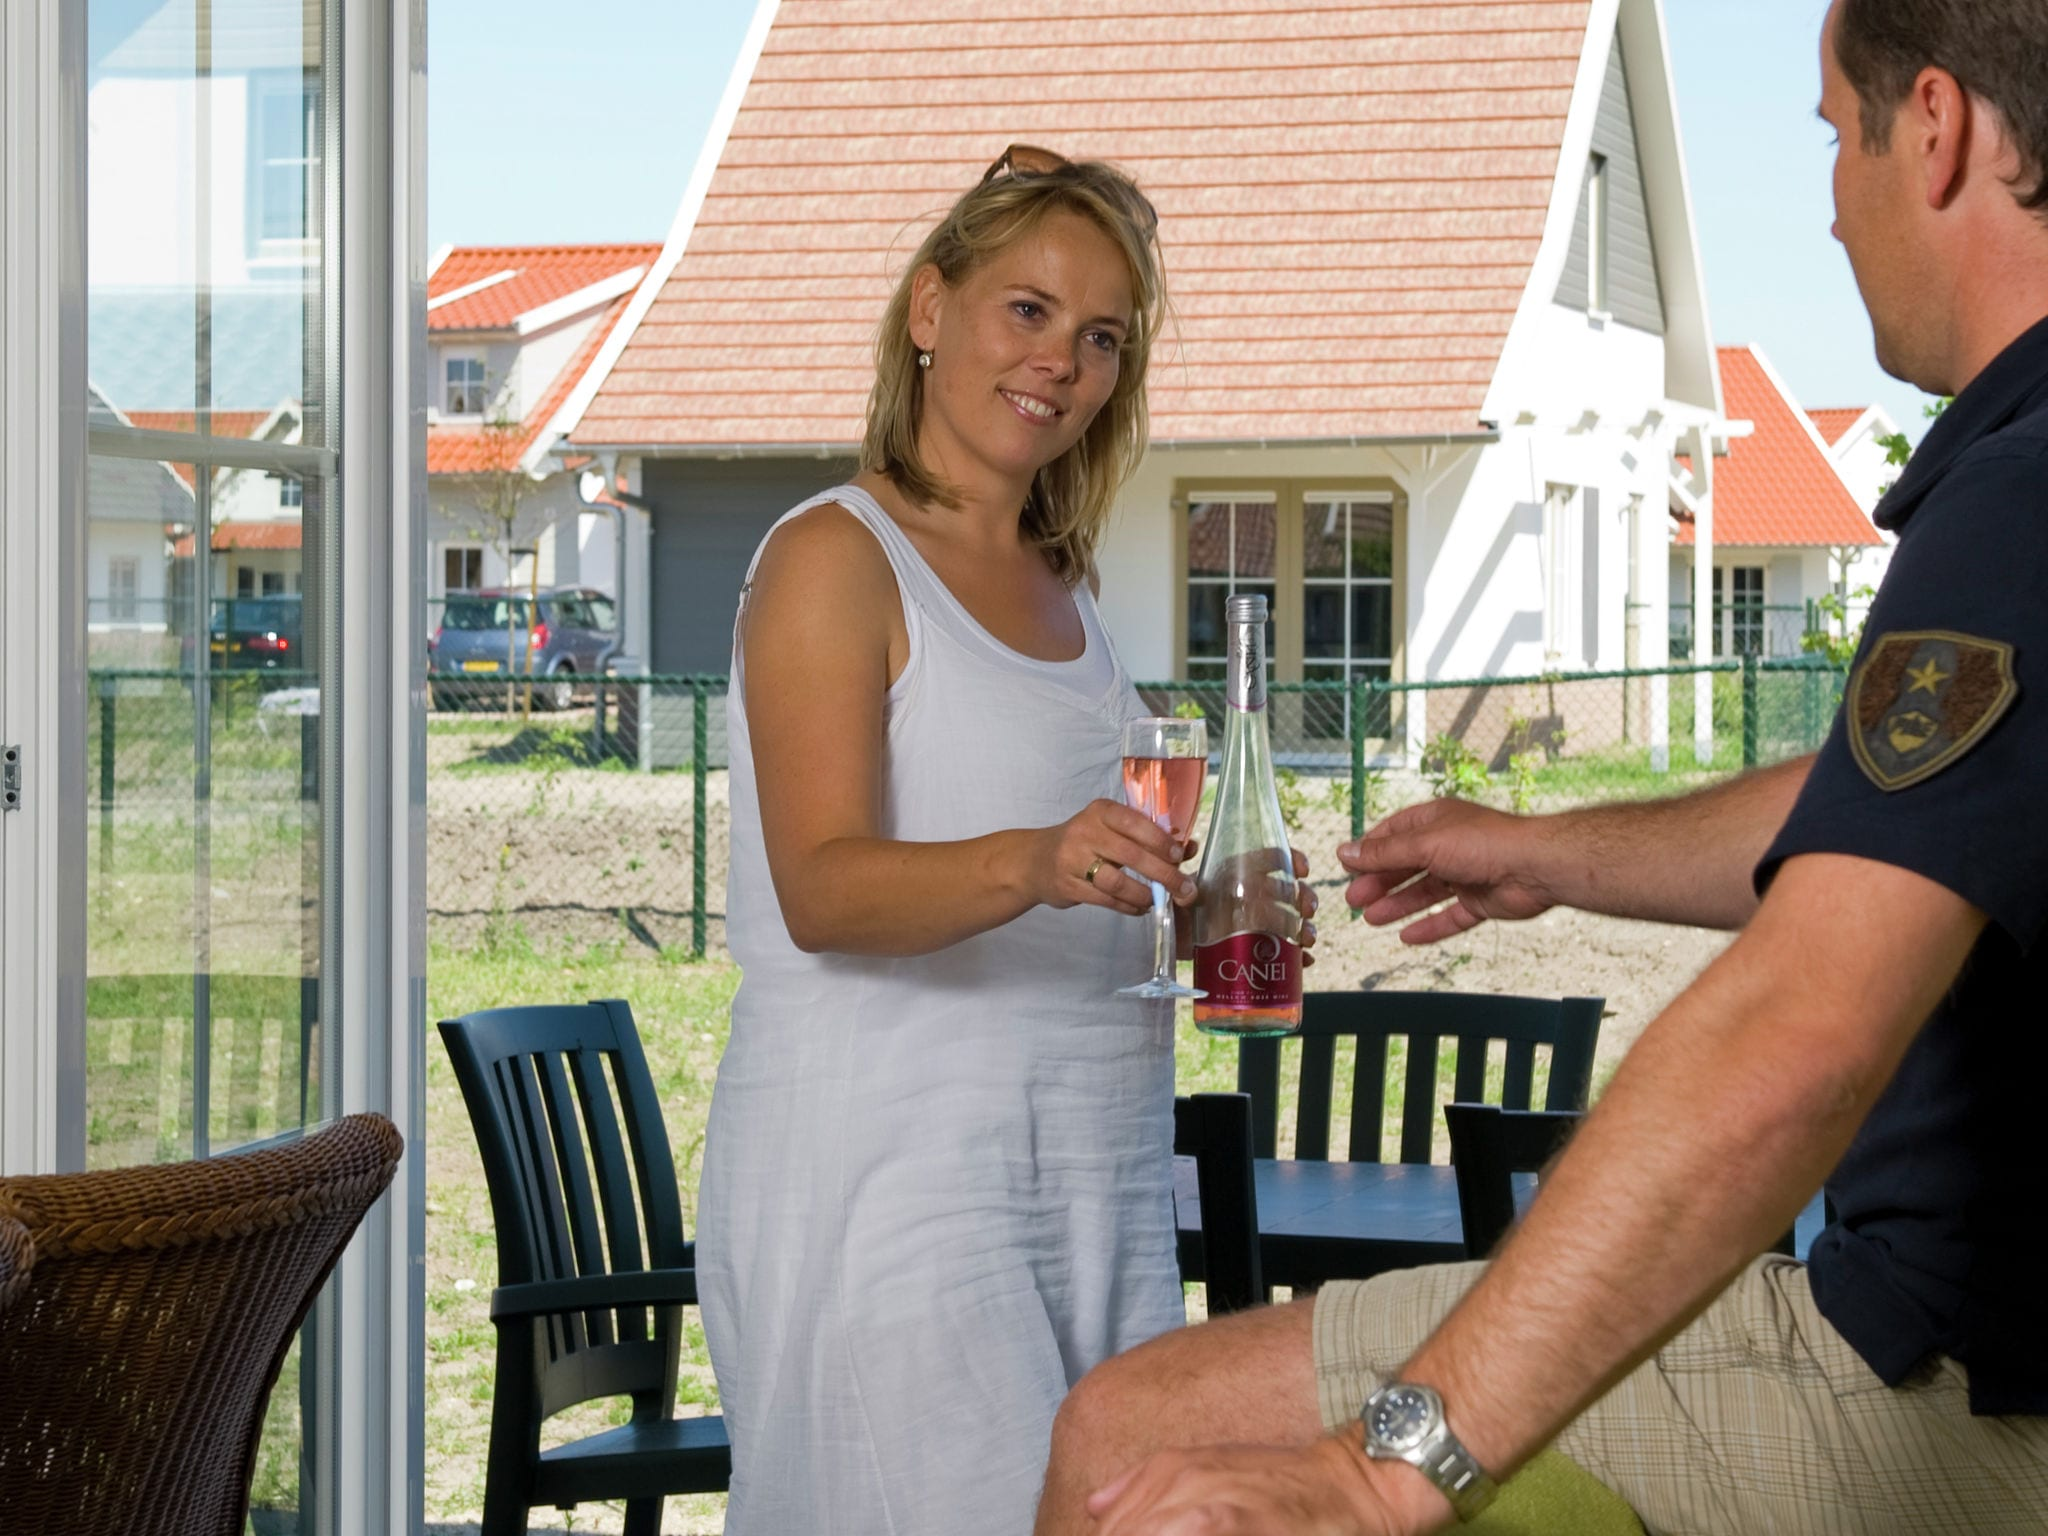 Holland | Limburg | Holiday home Klein Vink - Type KVR6B | all year | LivingRoom